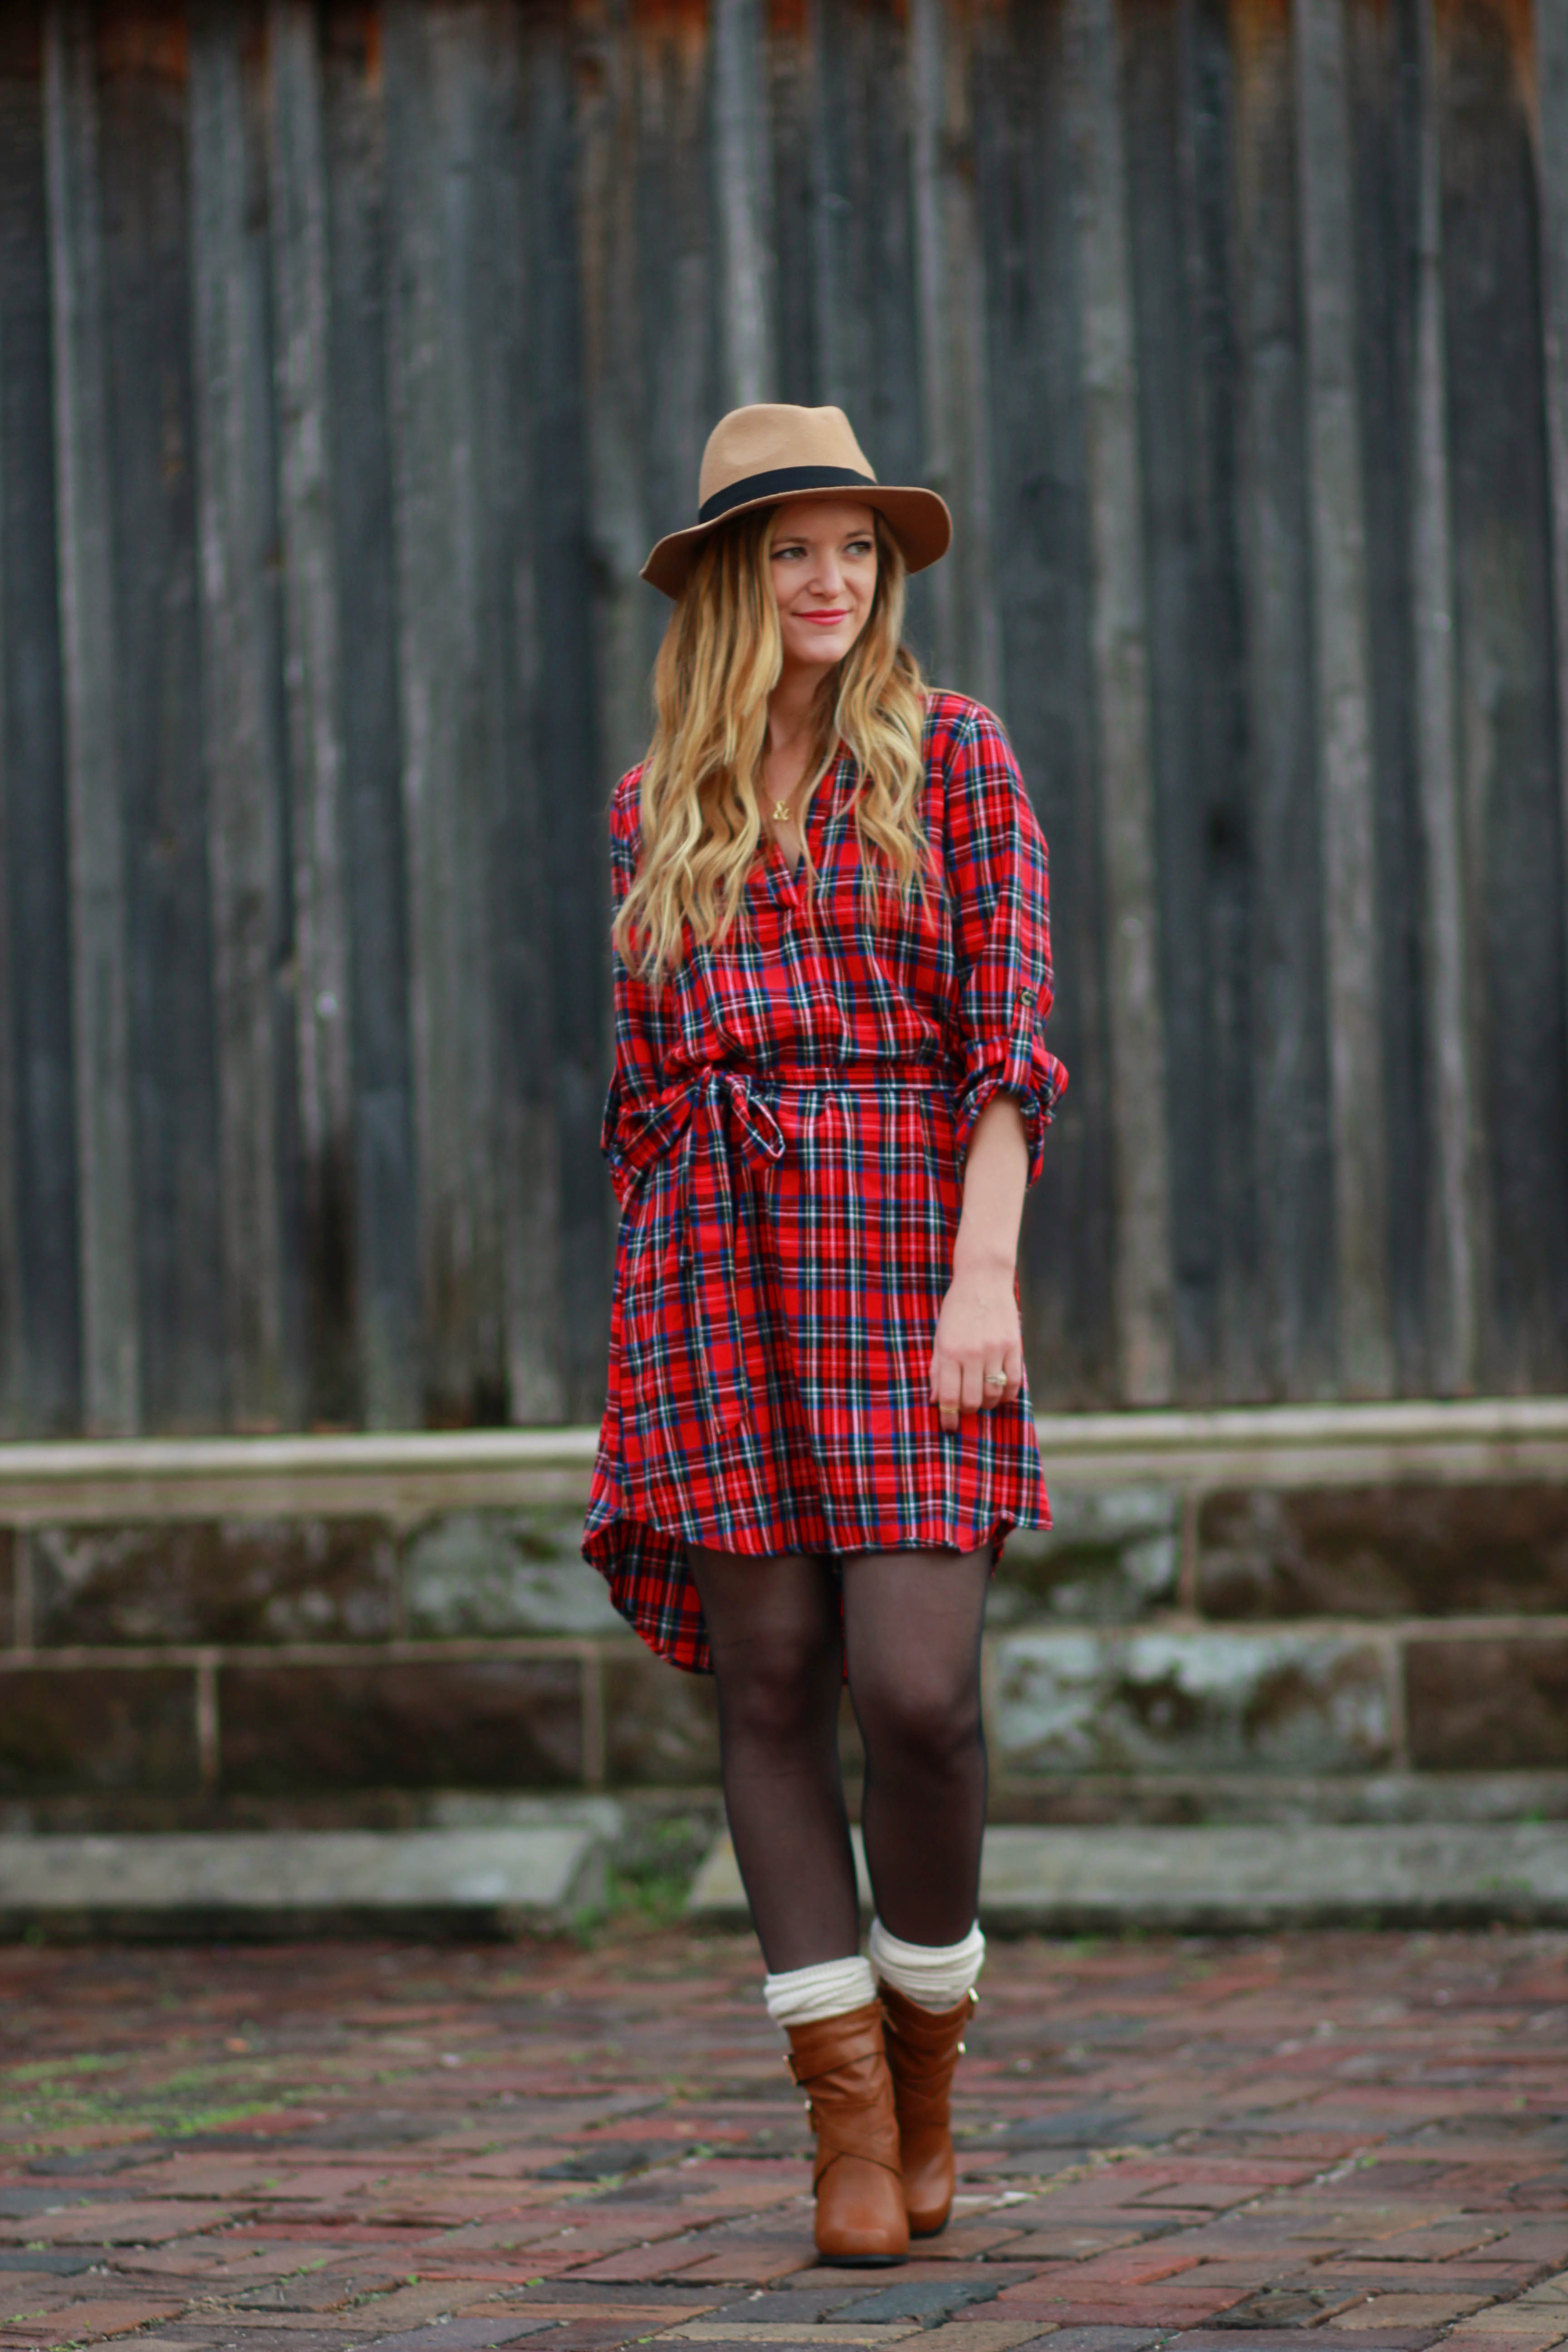 orlando, florida fashion blogger styles cheeky peach plaid dress, brown booties with socks for a casual winter outfit